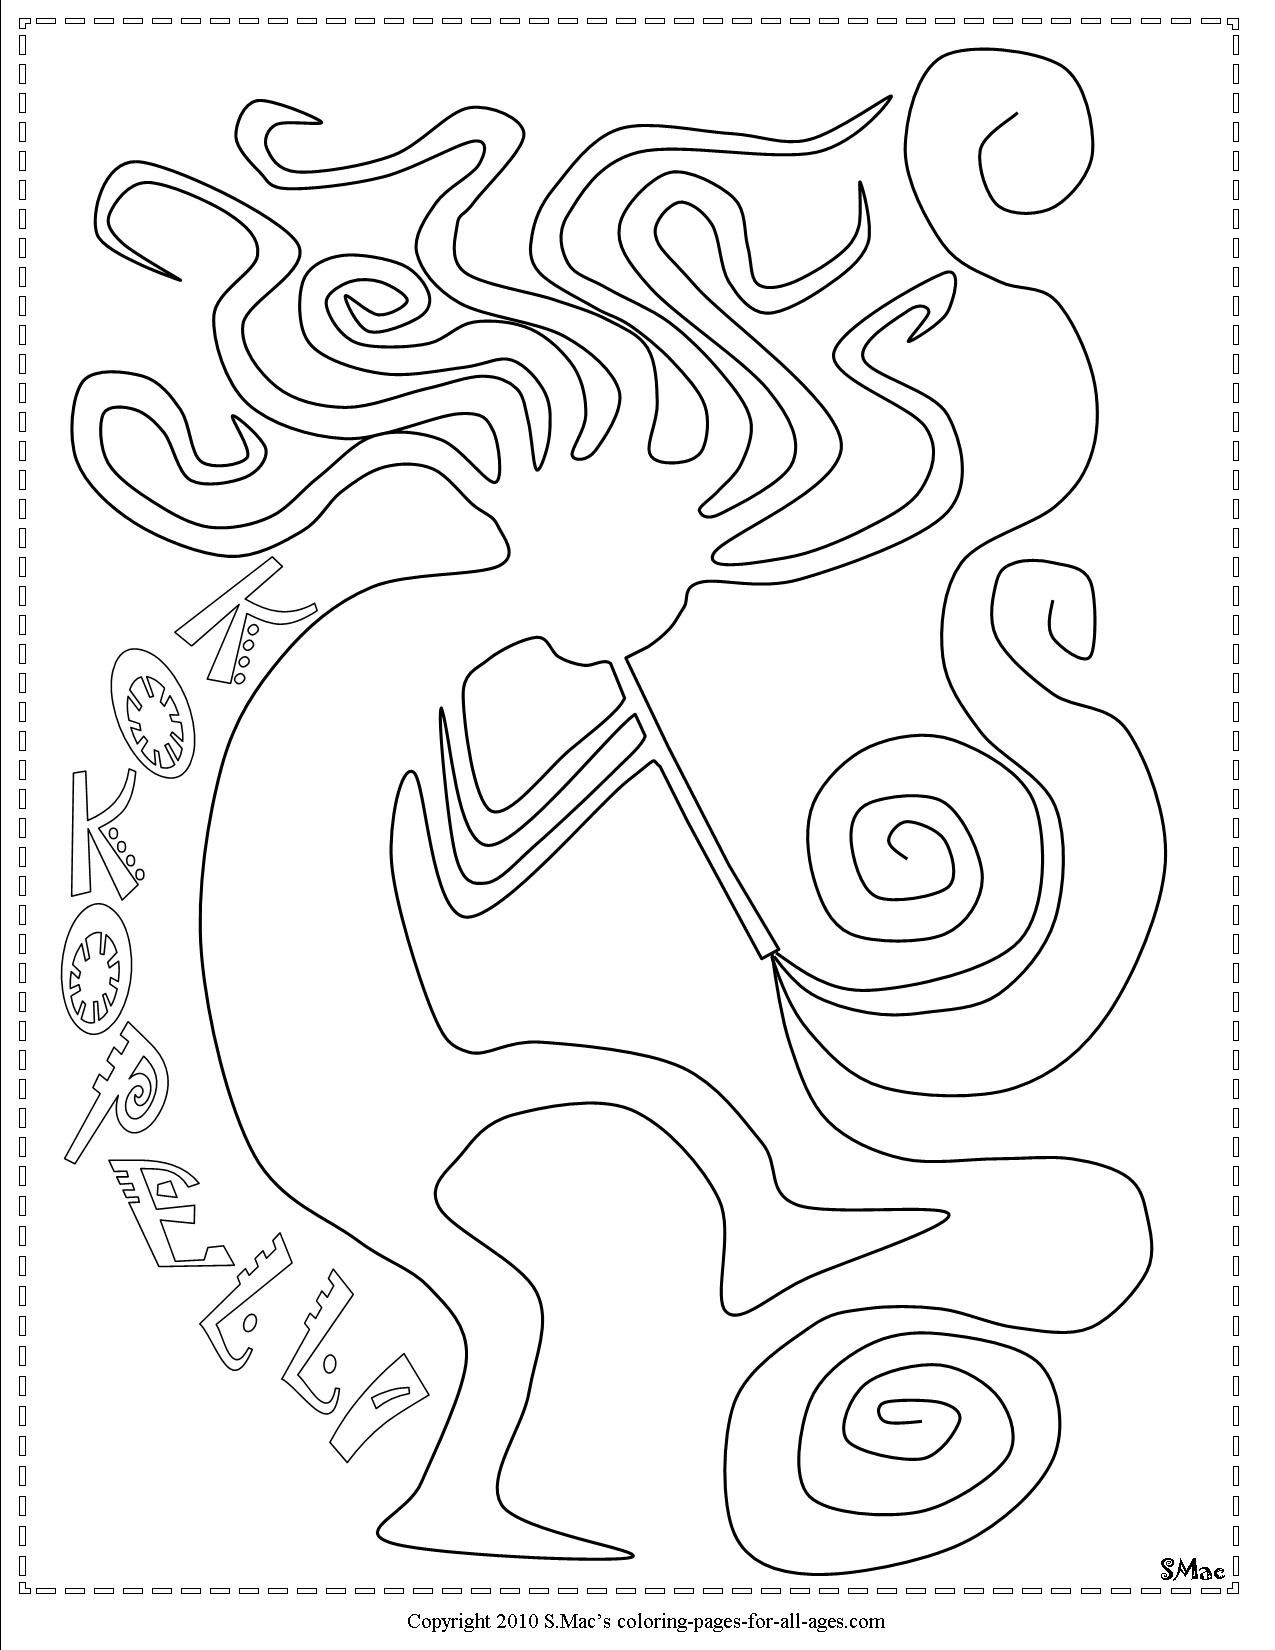 S mac coloring pages - S Mac S Kokopelli Coloring Page